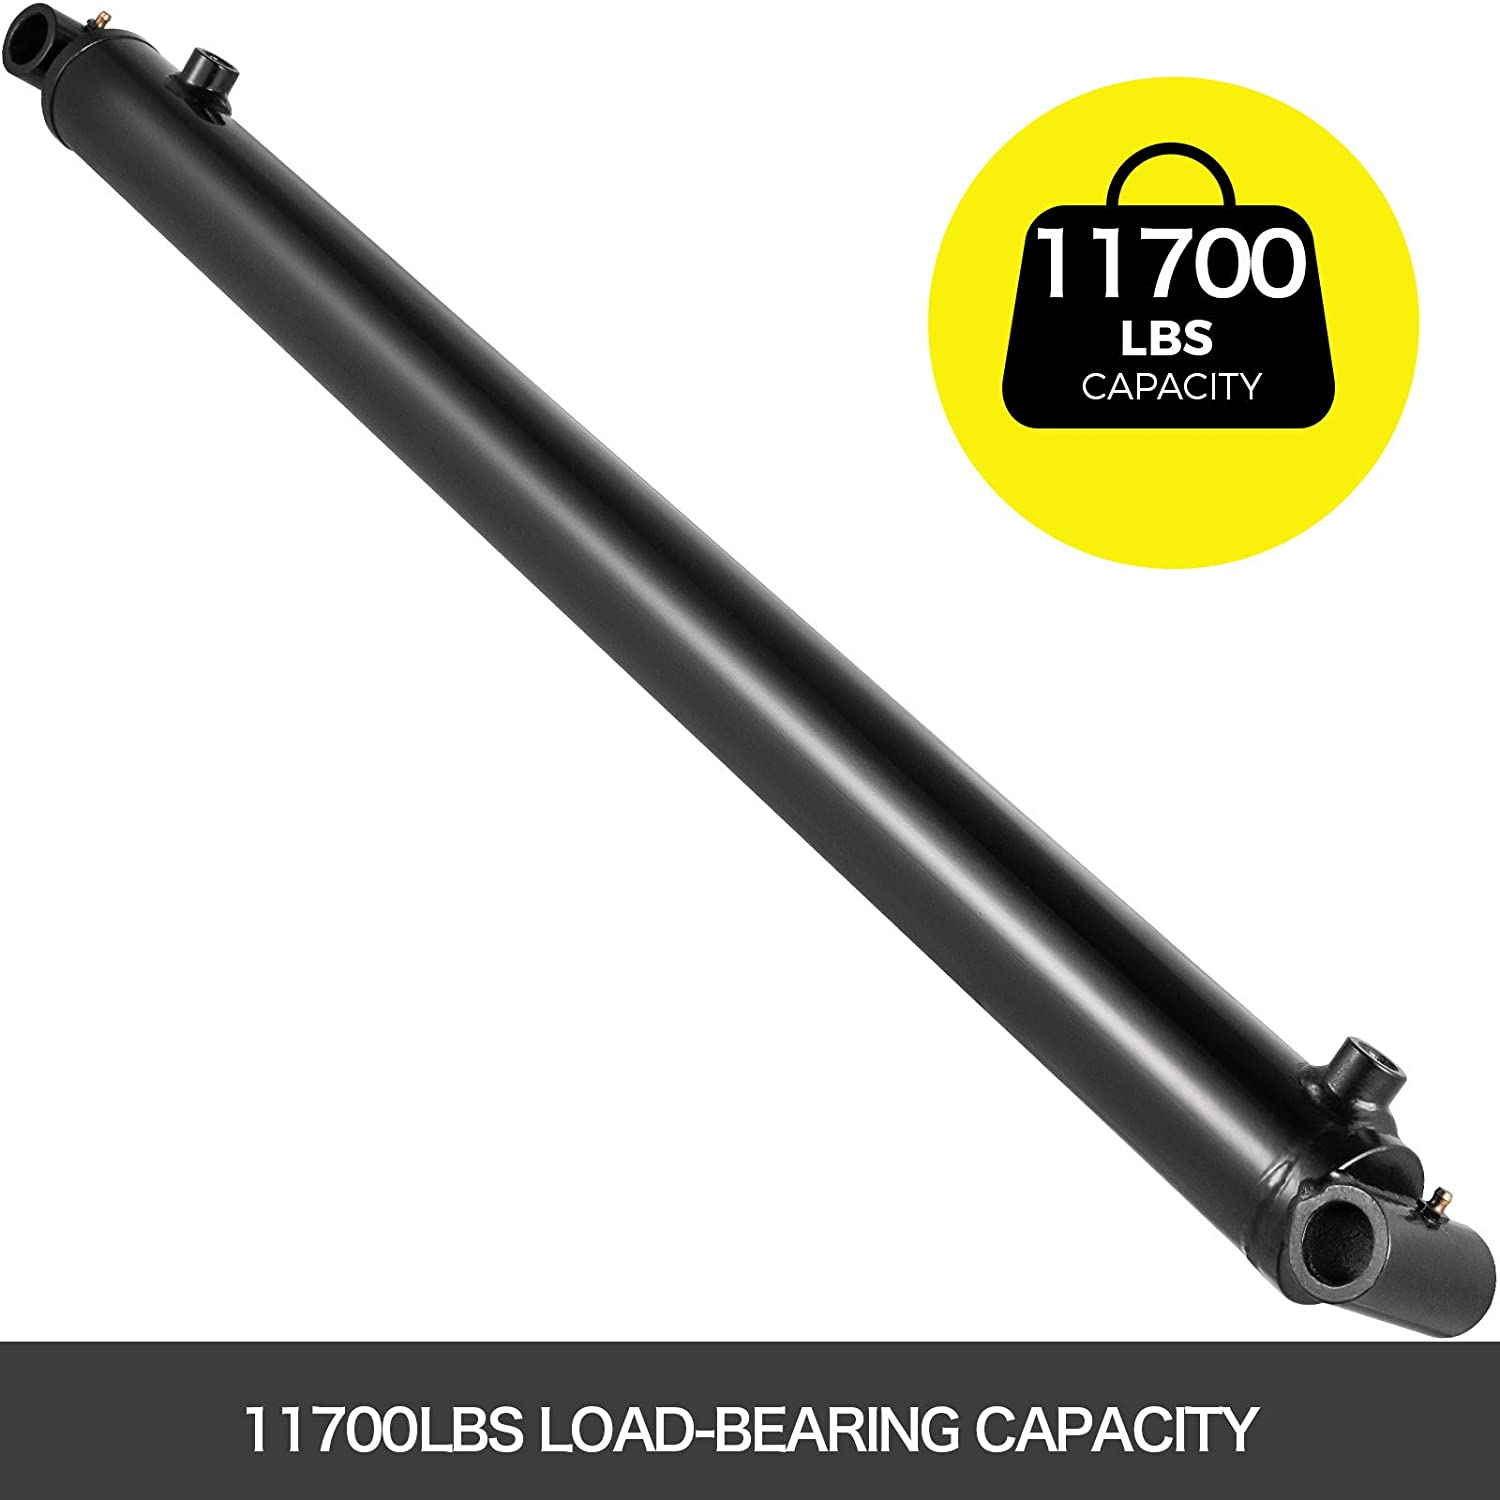 Bestauto Hydraulic Cylinder Welded Double Acting 2.5 Bore 30 Stroke Cross Tube 2.5 X 30